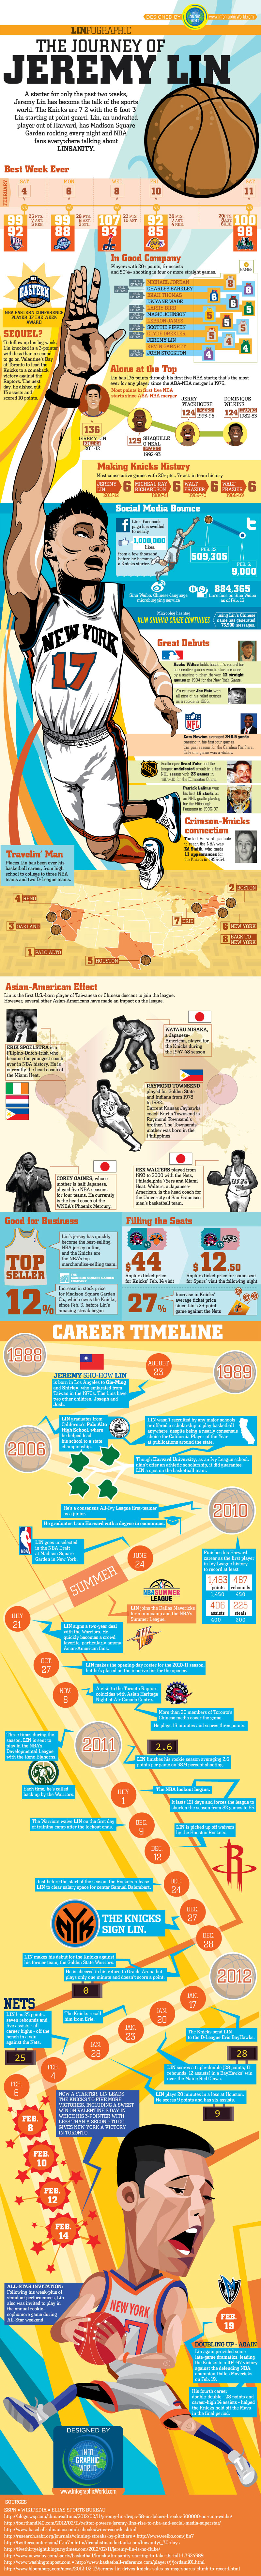 jeremy lin infographic